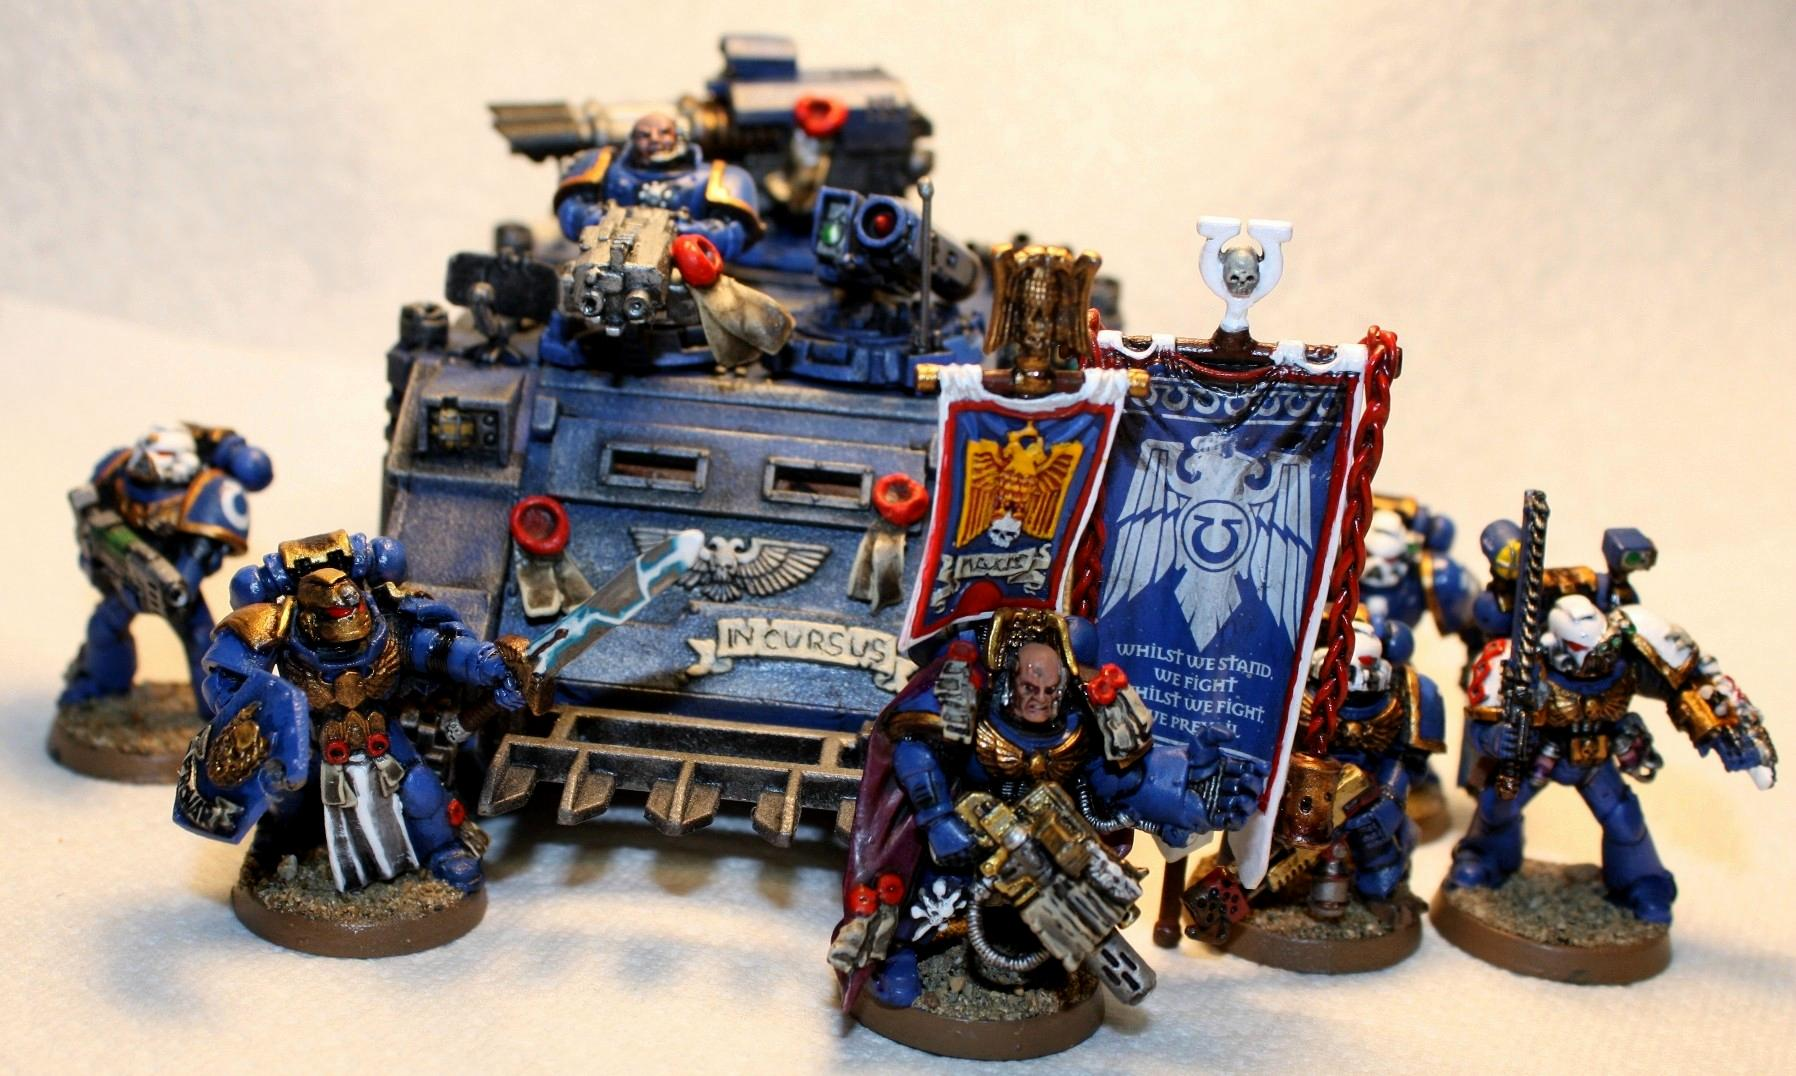 Banner, Captain, Command Squad, Powersword, Razorback, Space Marines, Ultramarines